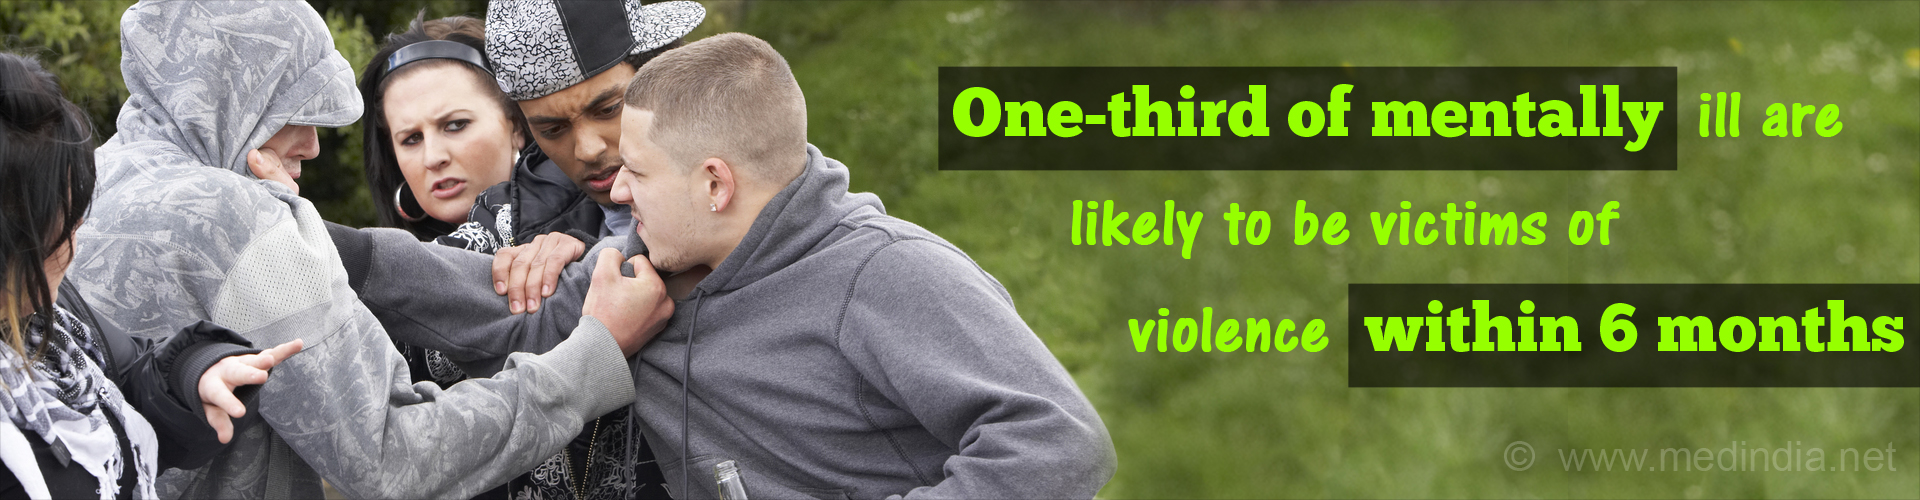 Risk of Violence Higher Among the Mentally Ill